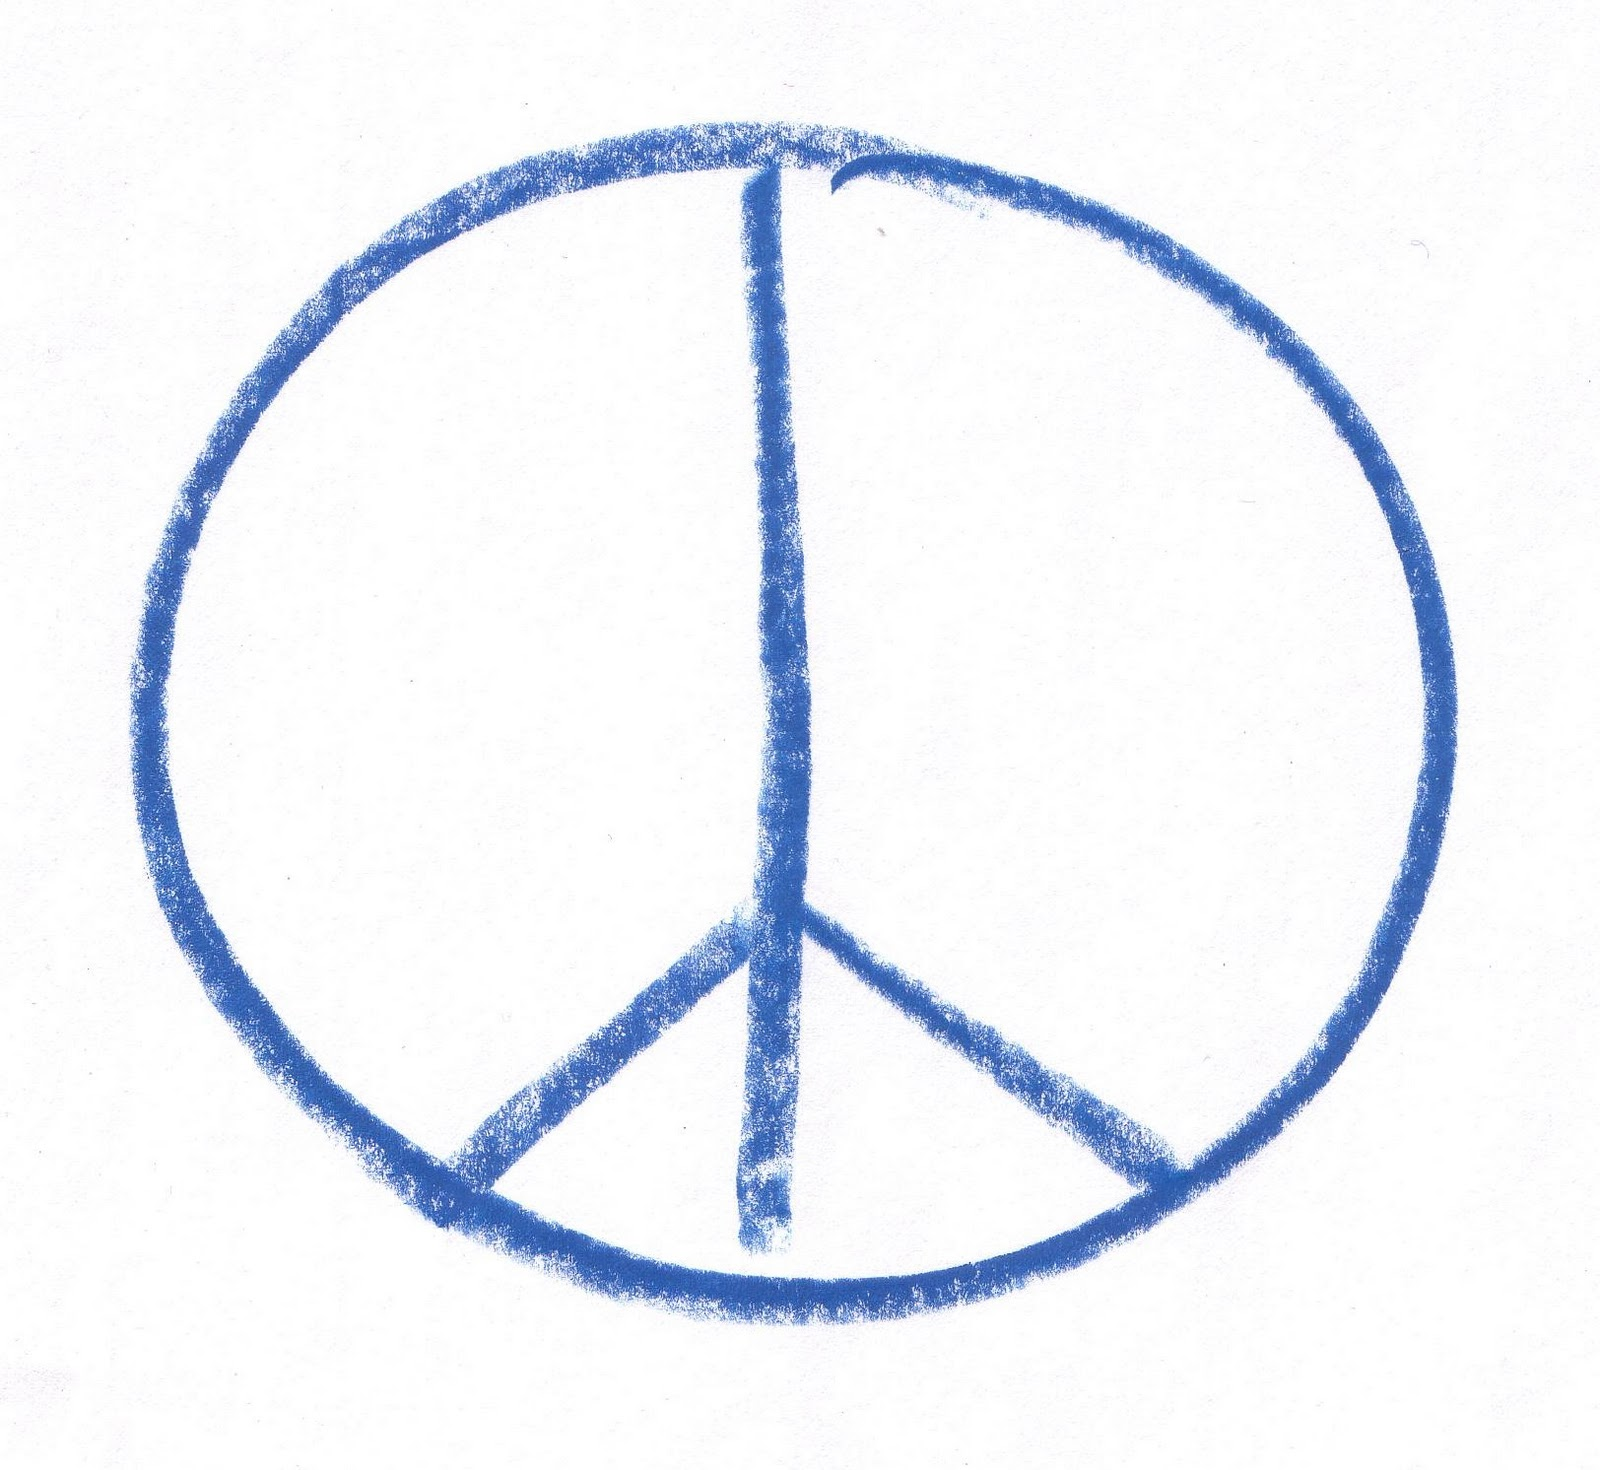 peace tegn betydning